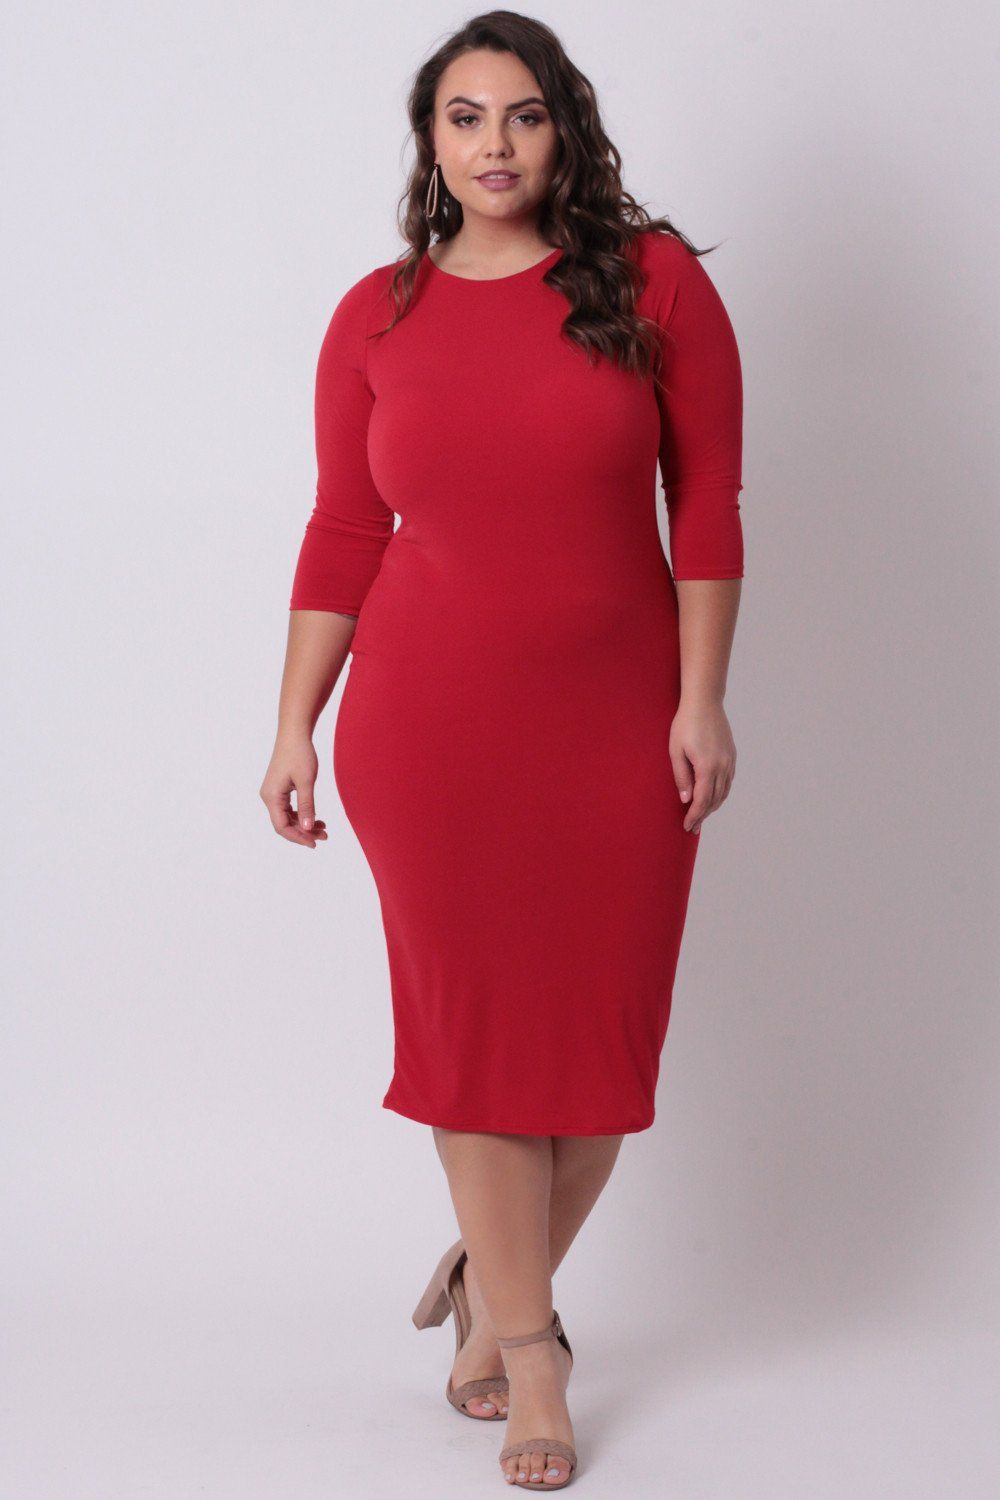 Plus Size Draped Open Back Dress - Red | Anna Krylova (CurvySense ...